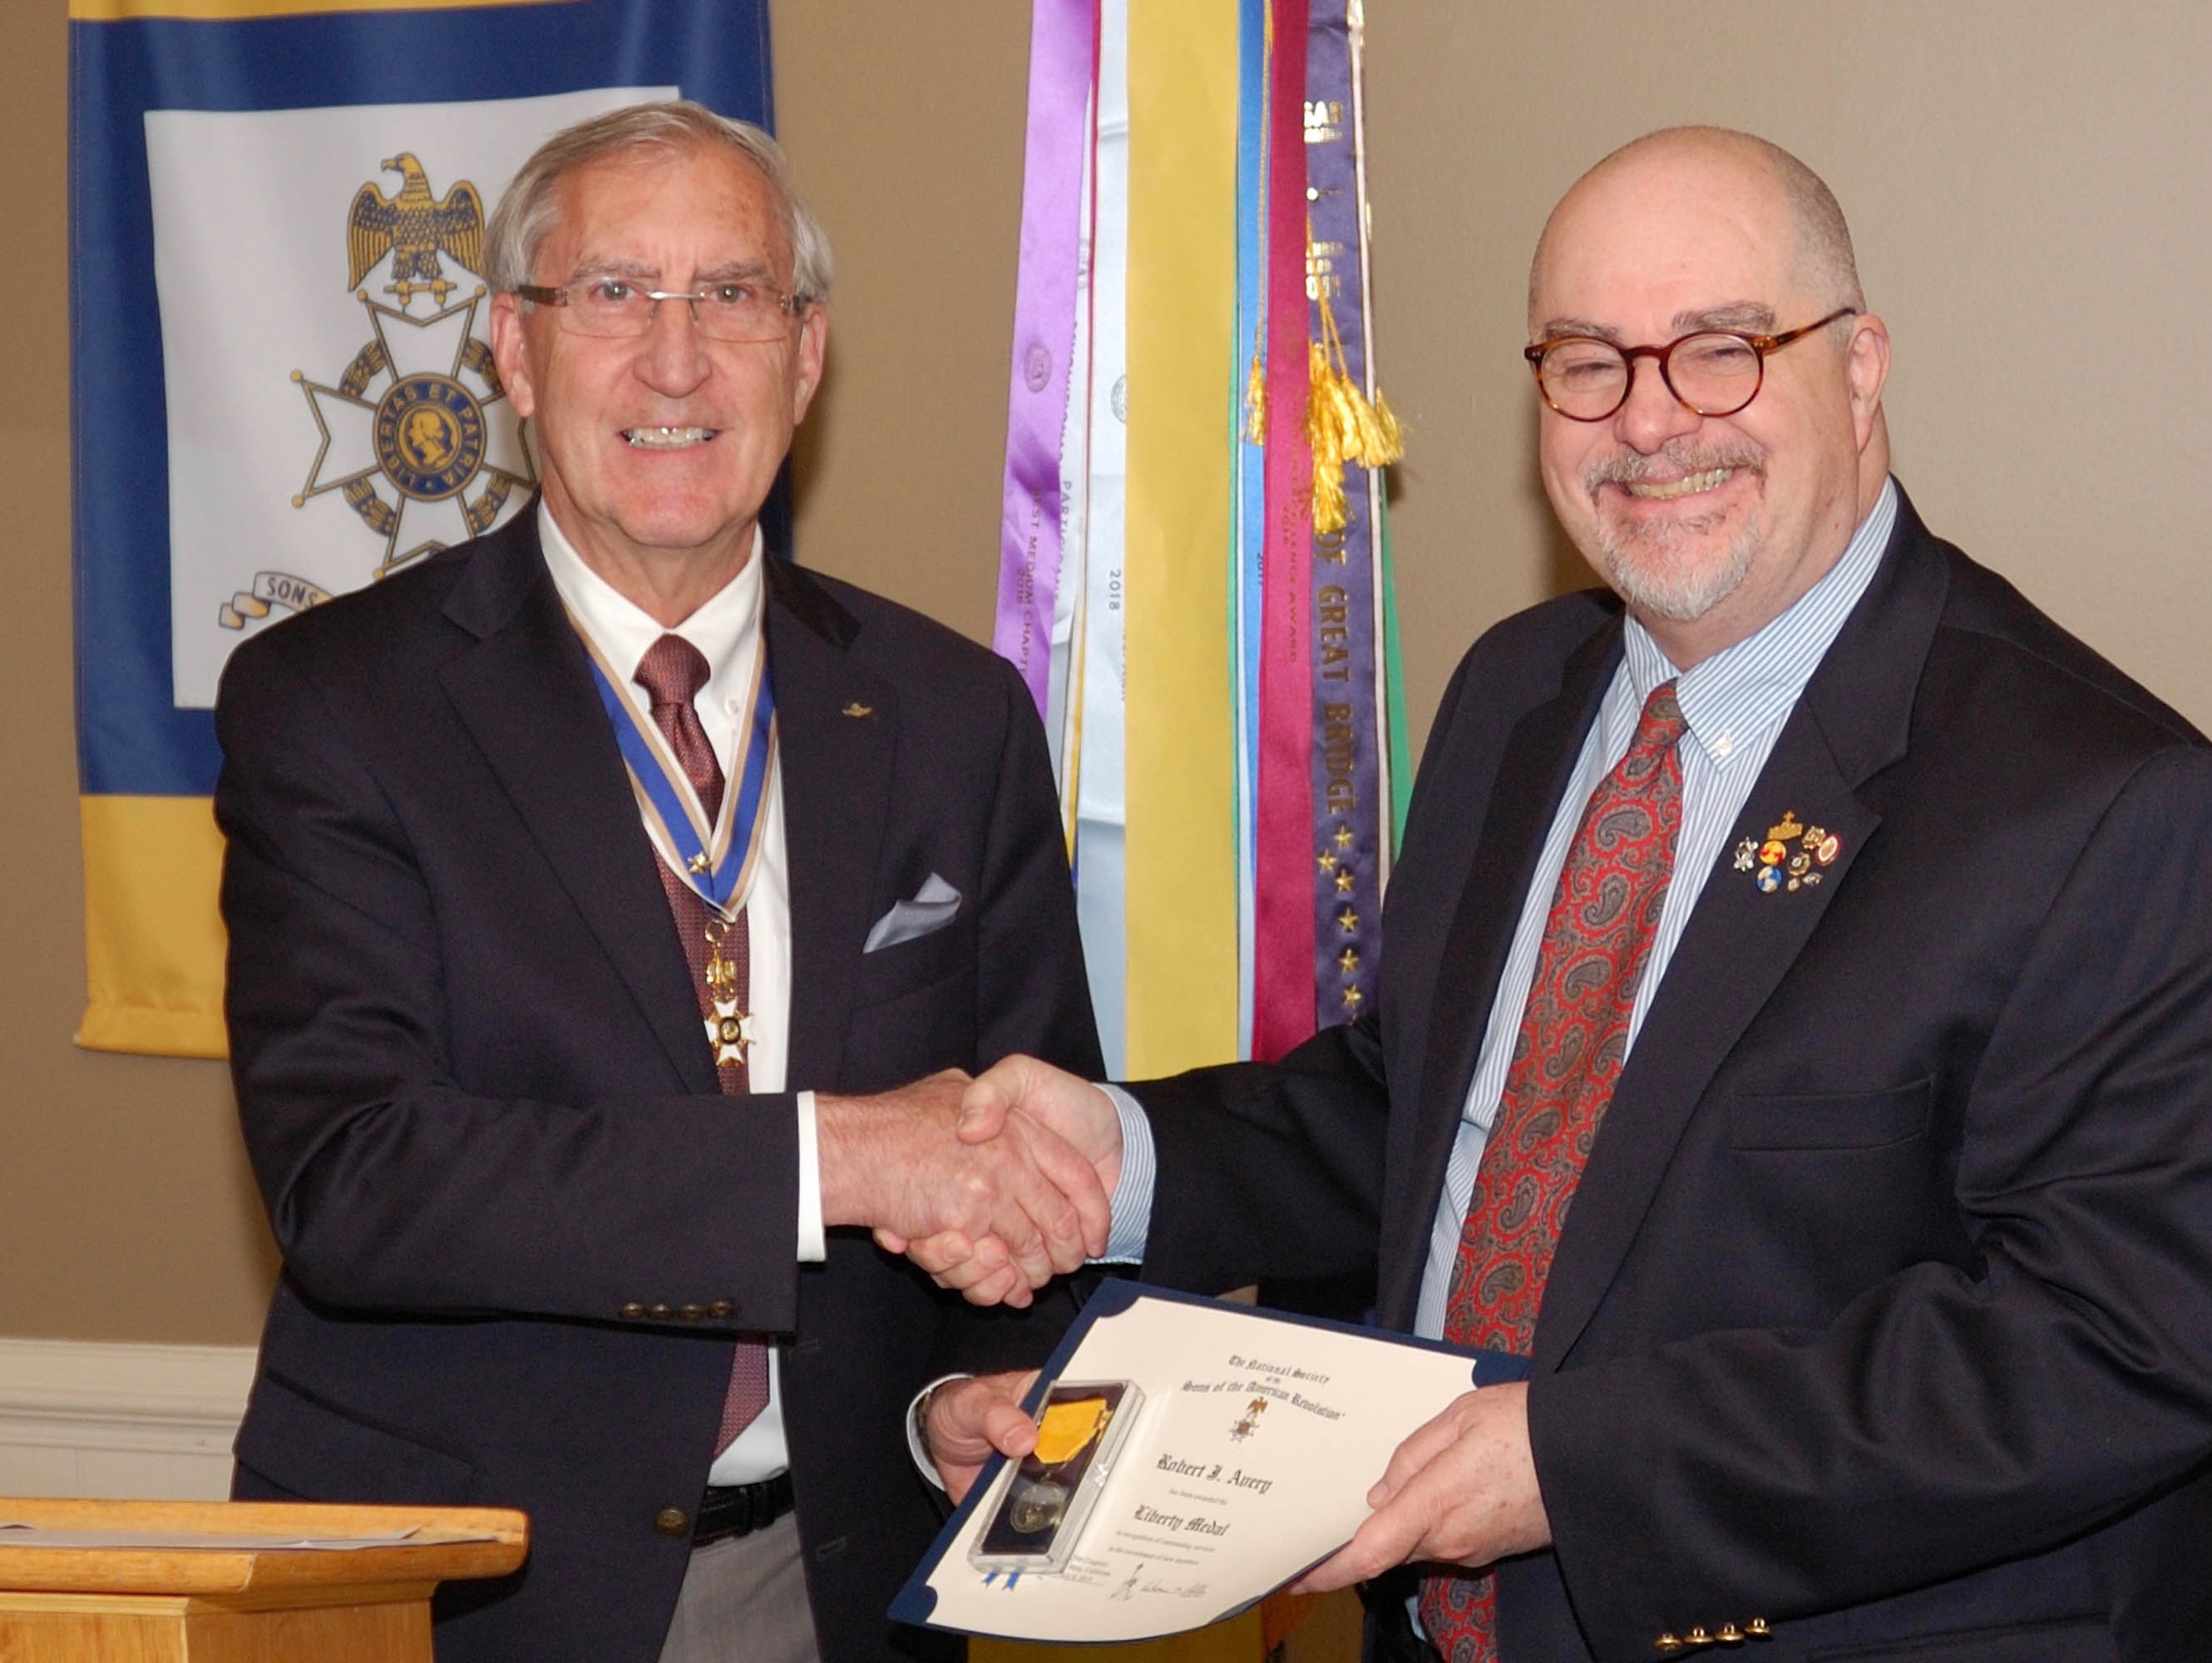 Compatriot Bob Avery receives the Liberty Medal from President Ken Hawkins